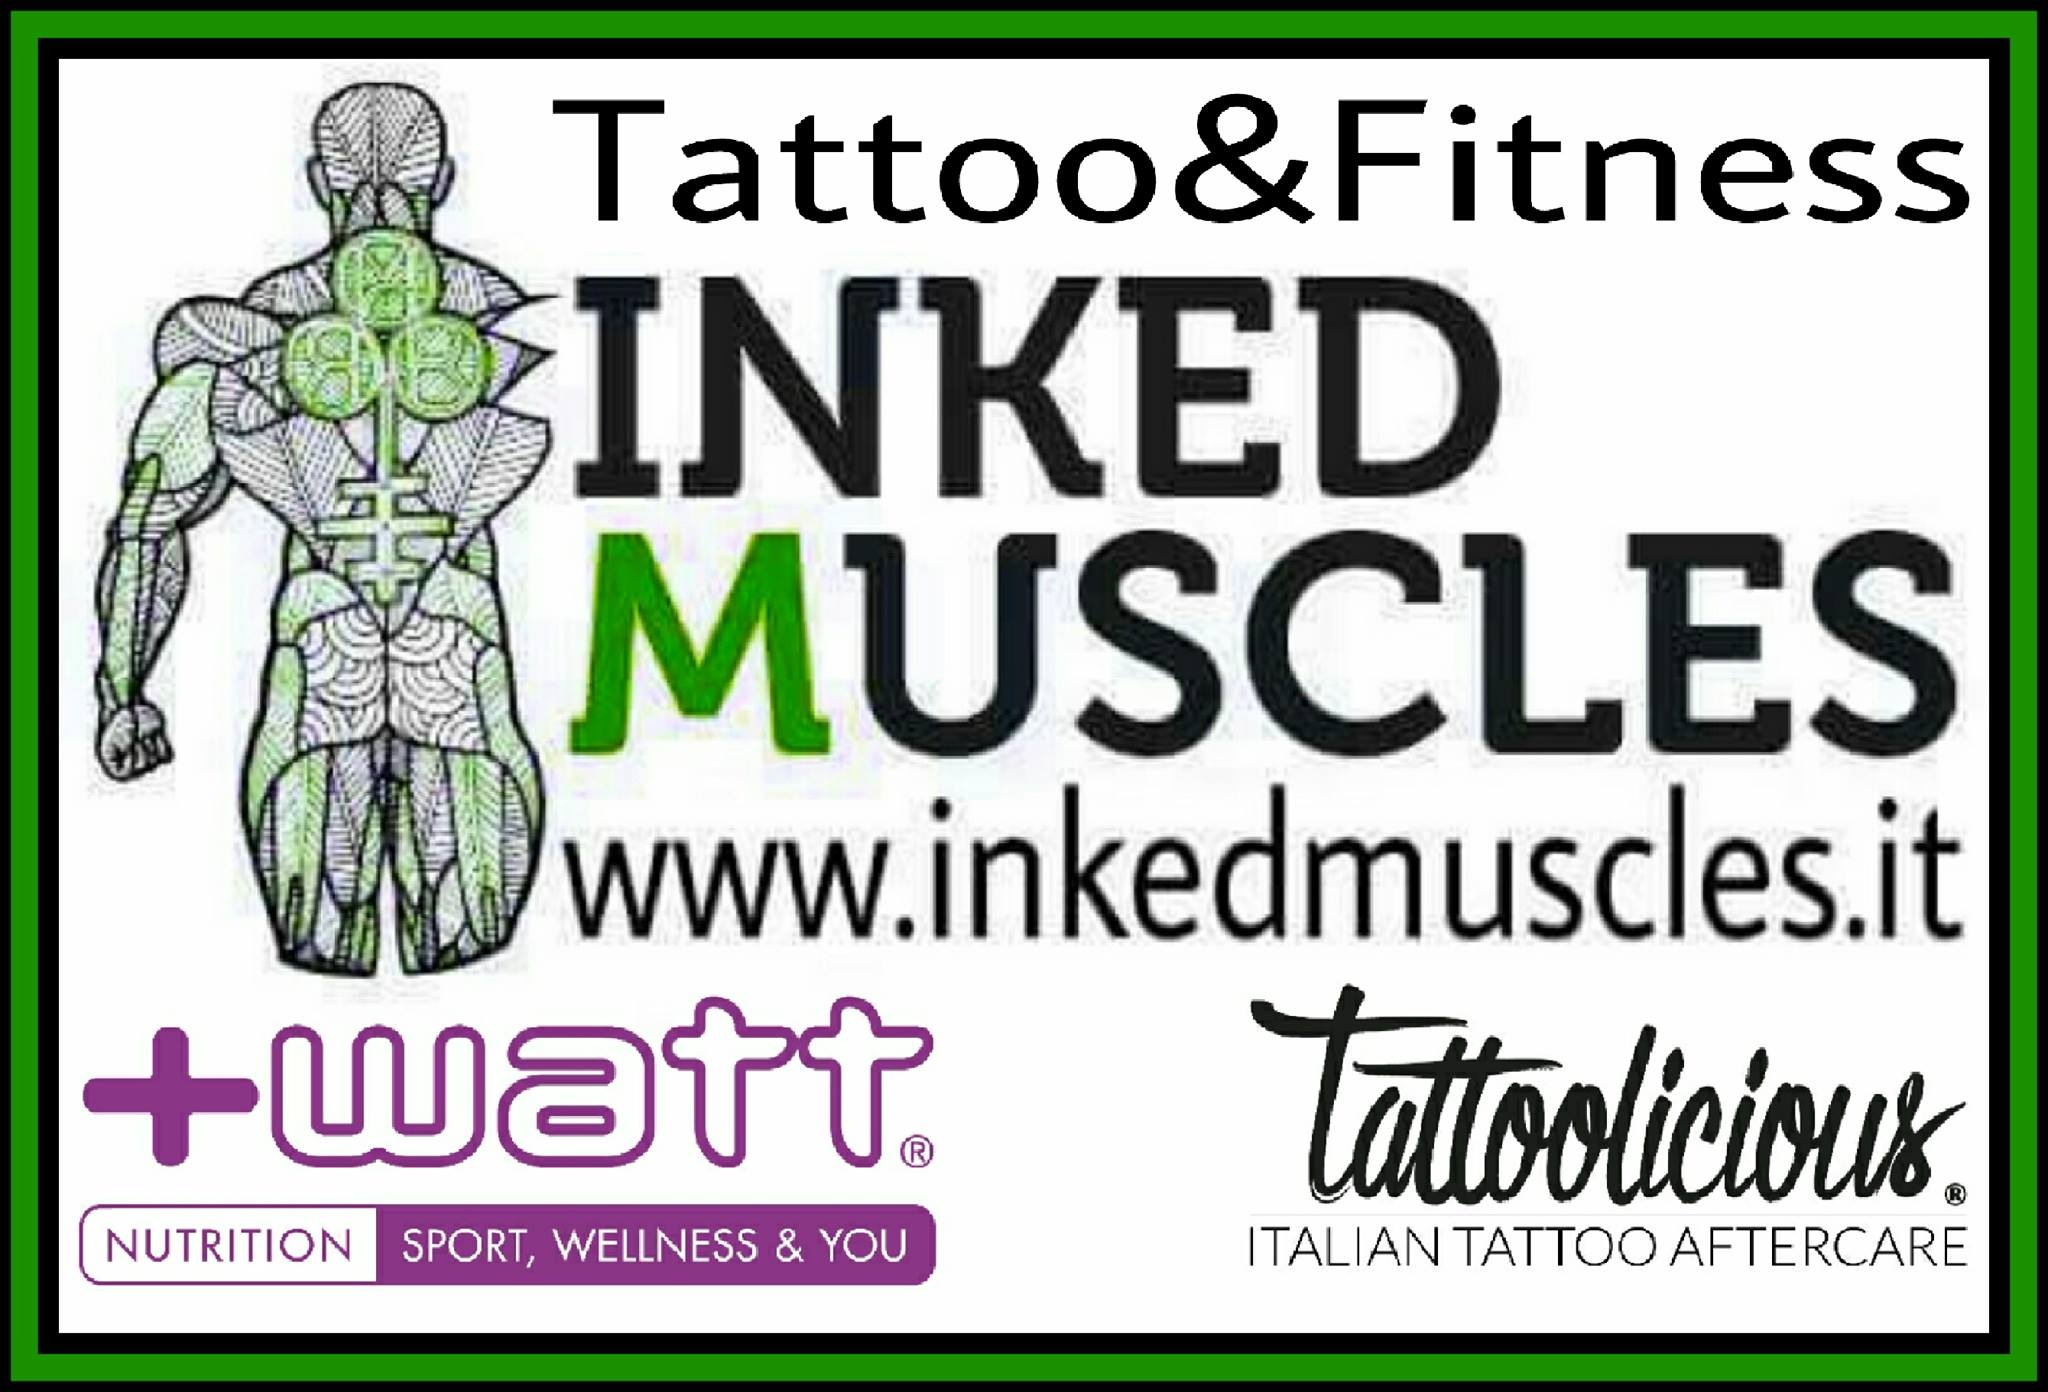 Inked Muscles